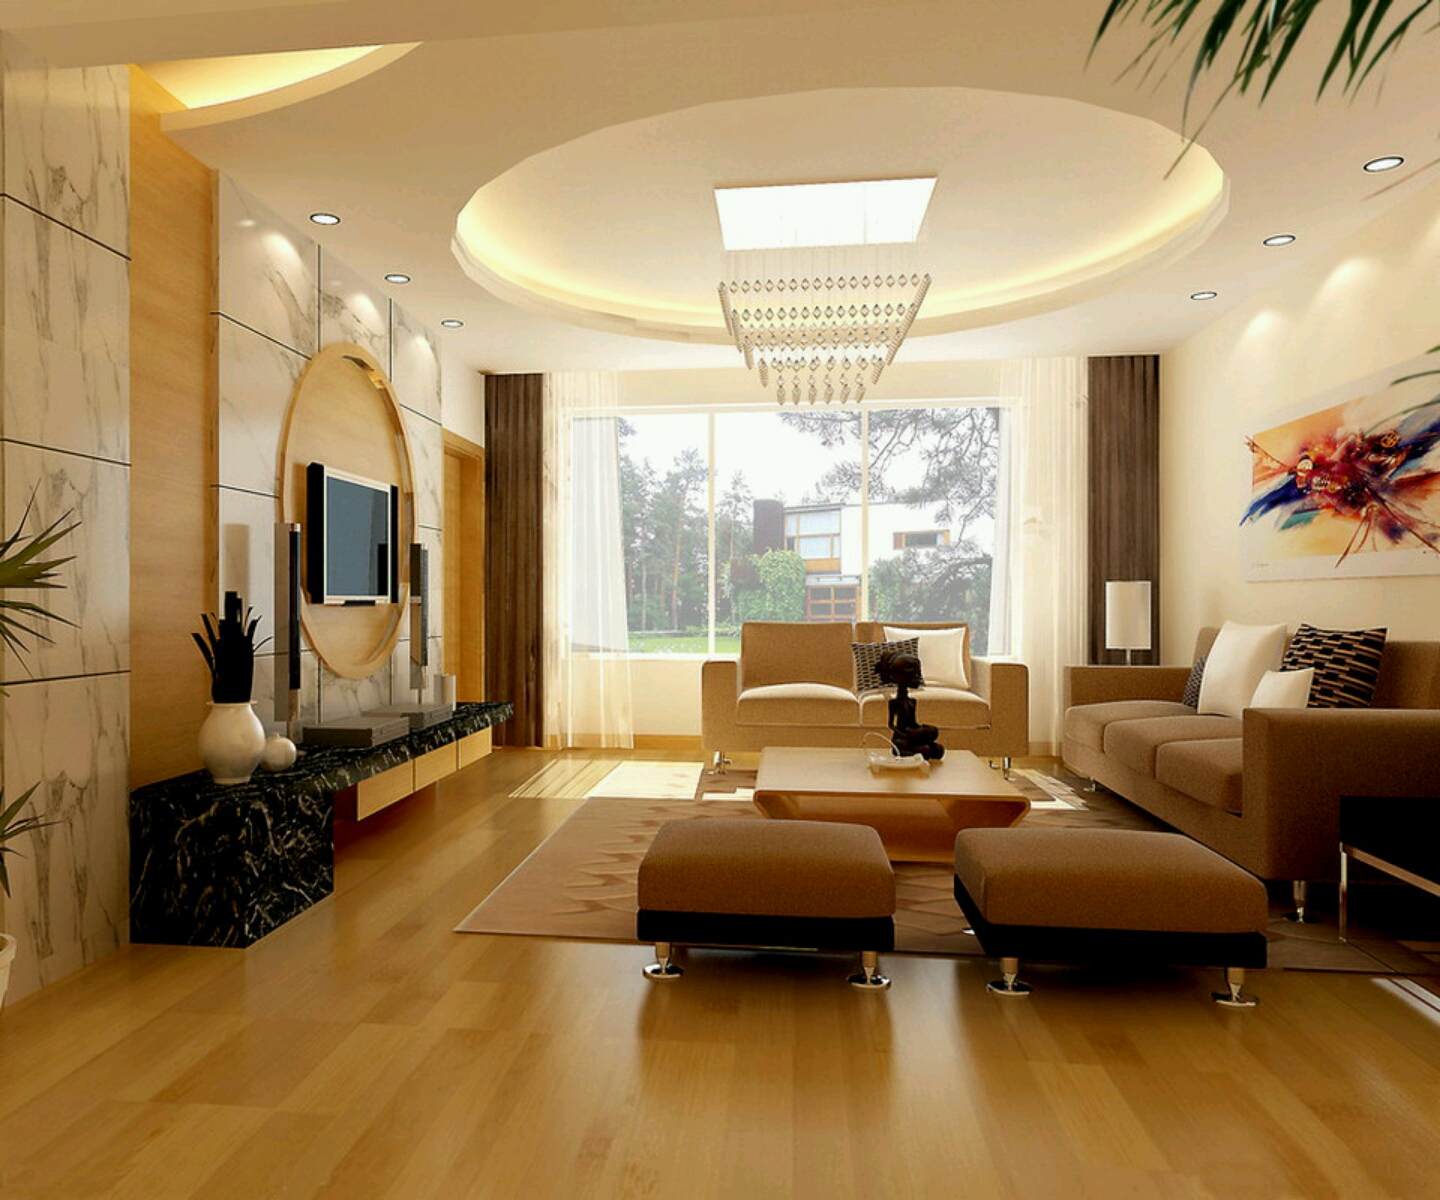 Home Design Ideas Modern: Modern Interior Decoration Living Rooms Ceiling Designs